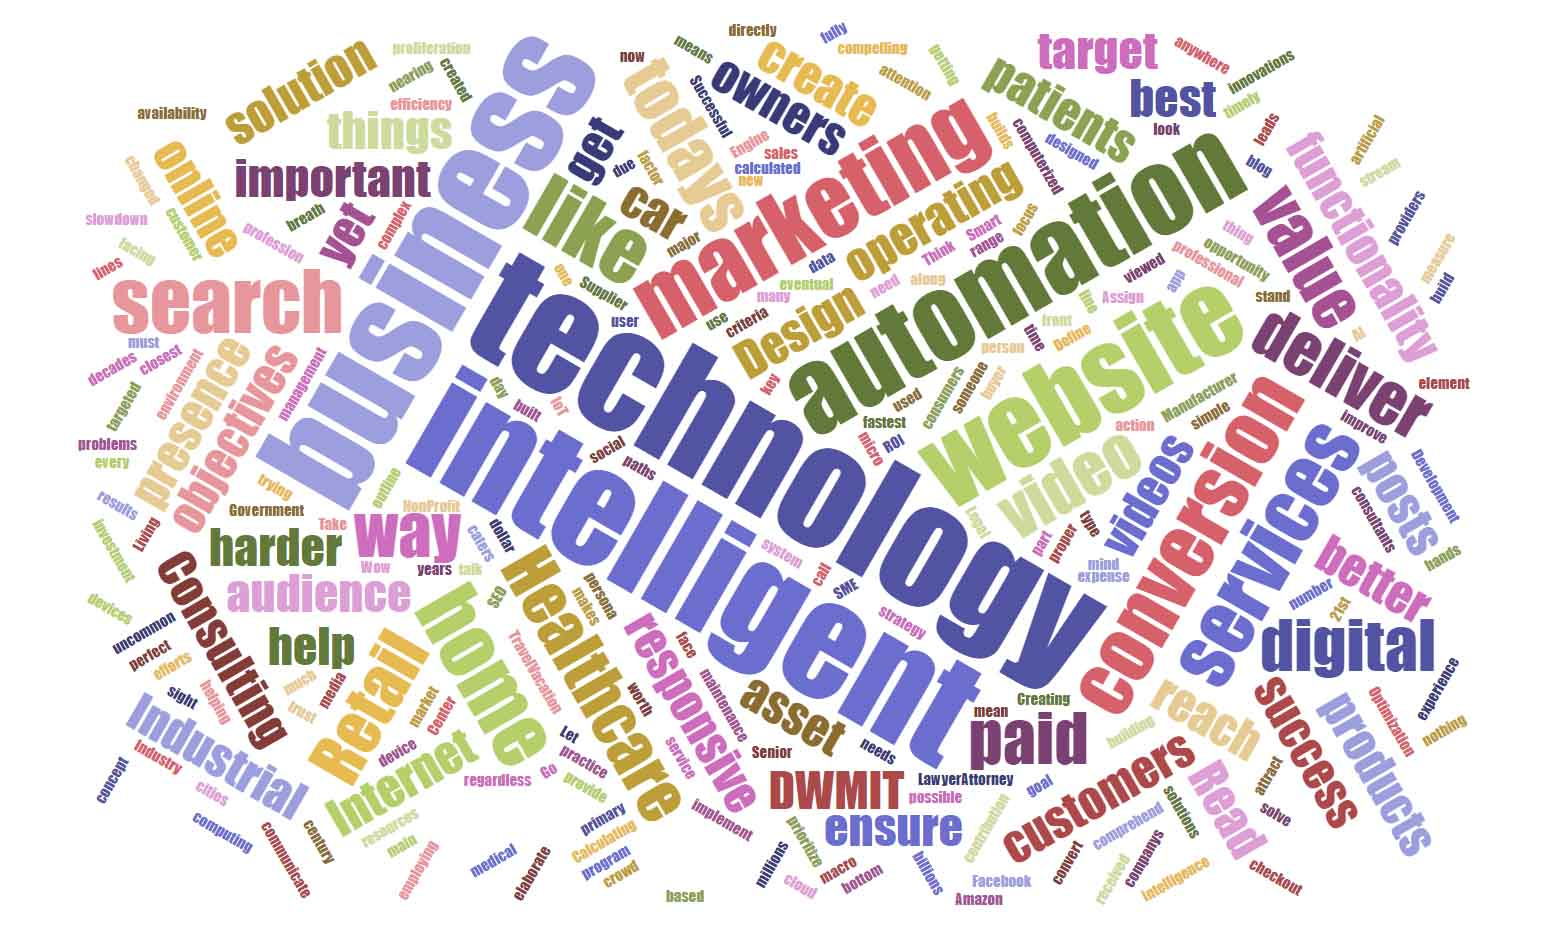 DWMIT Services Word Cloud